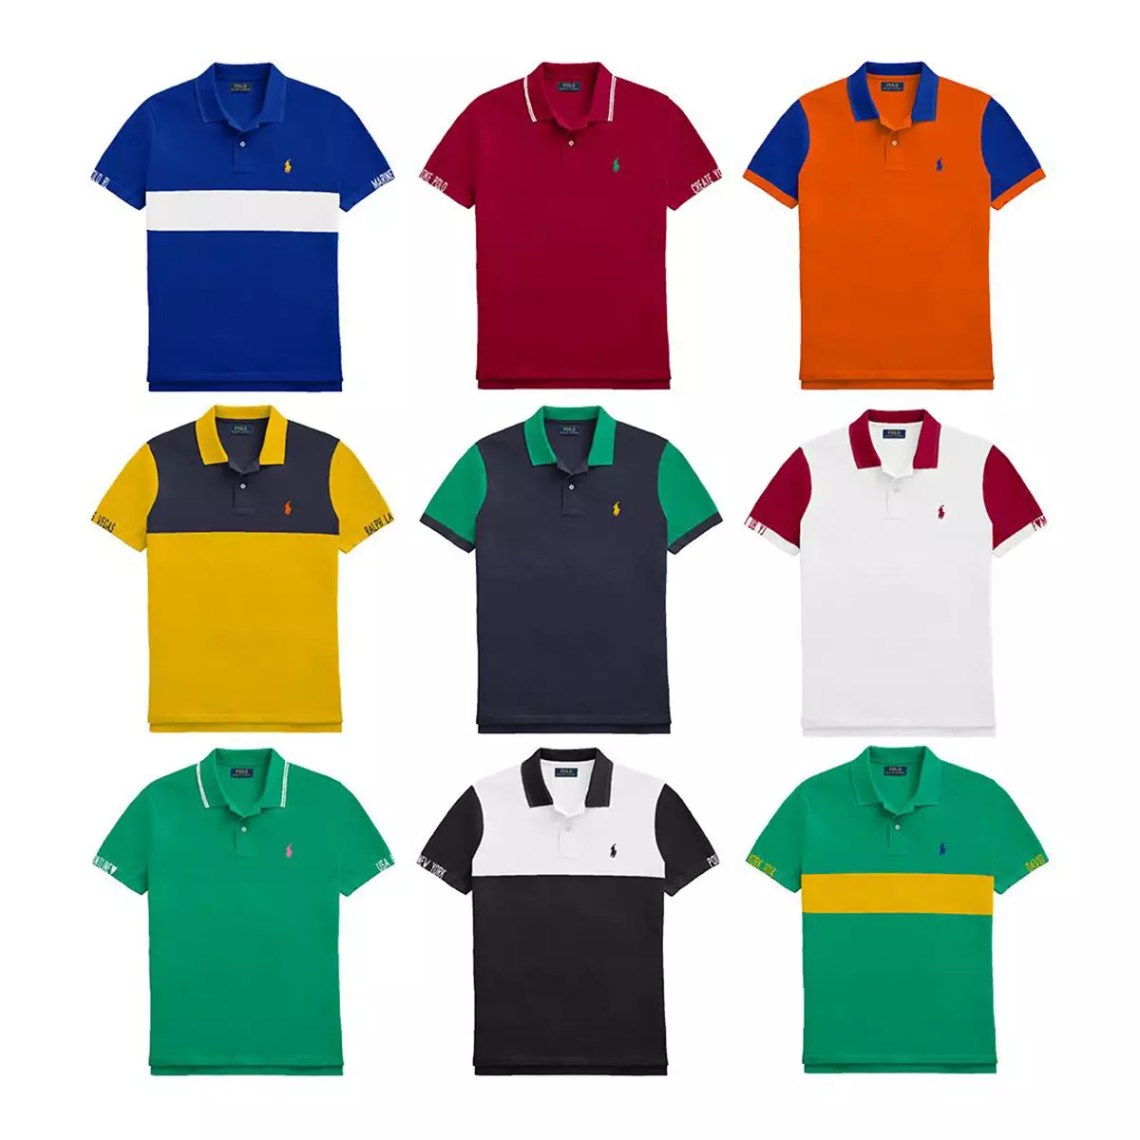 Now You Can Design Your Own Ralph Lauren Polo Shirt